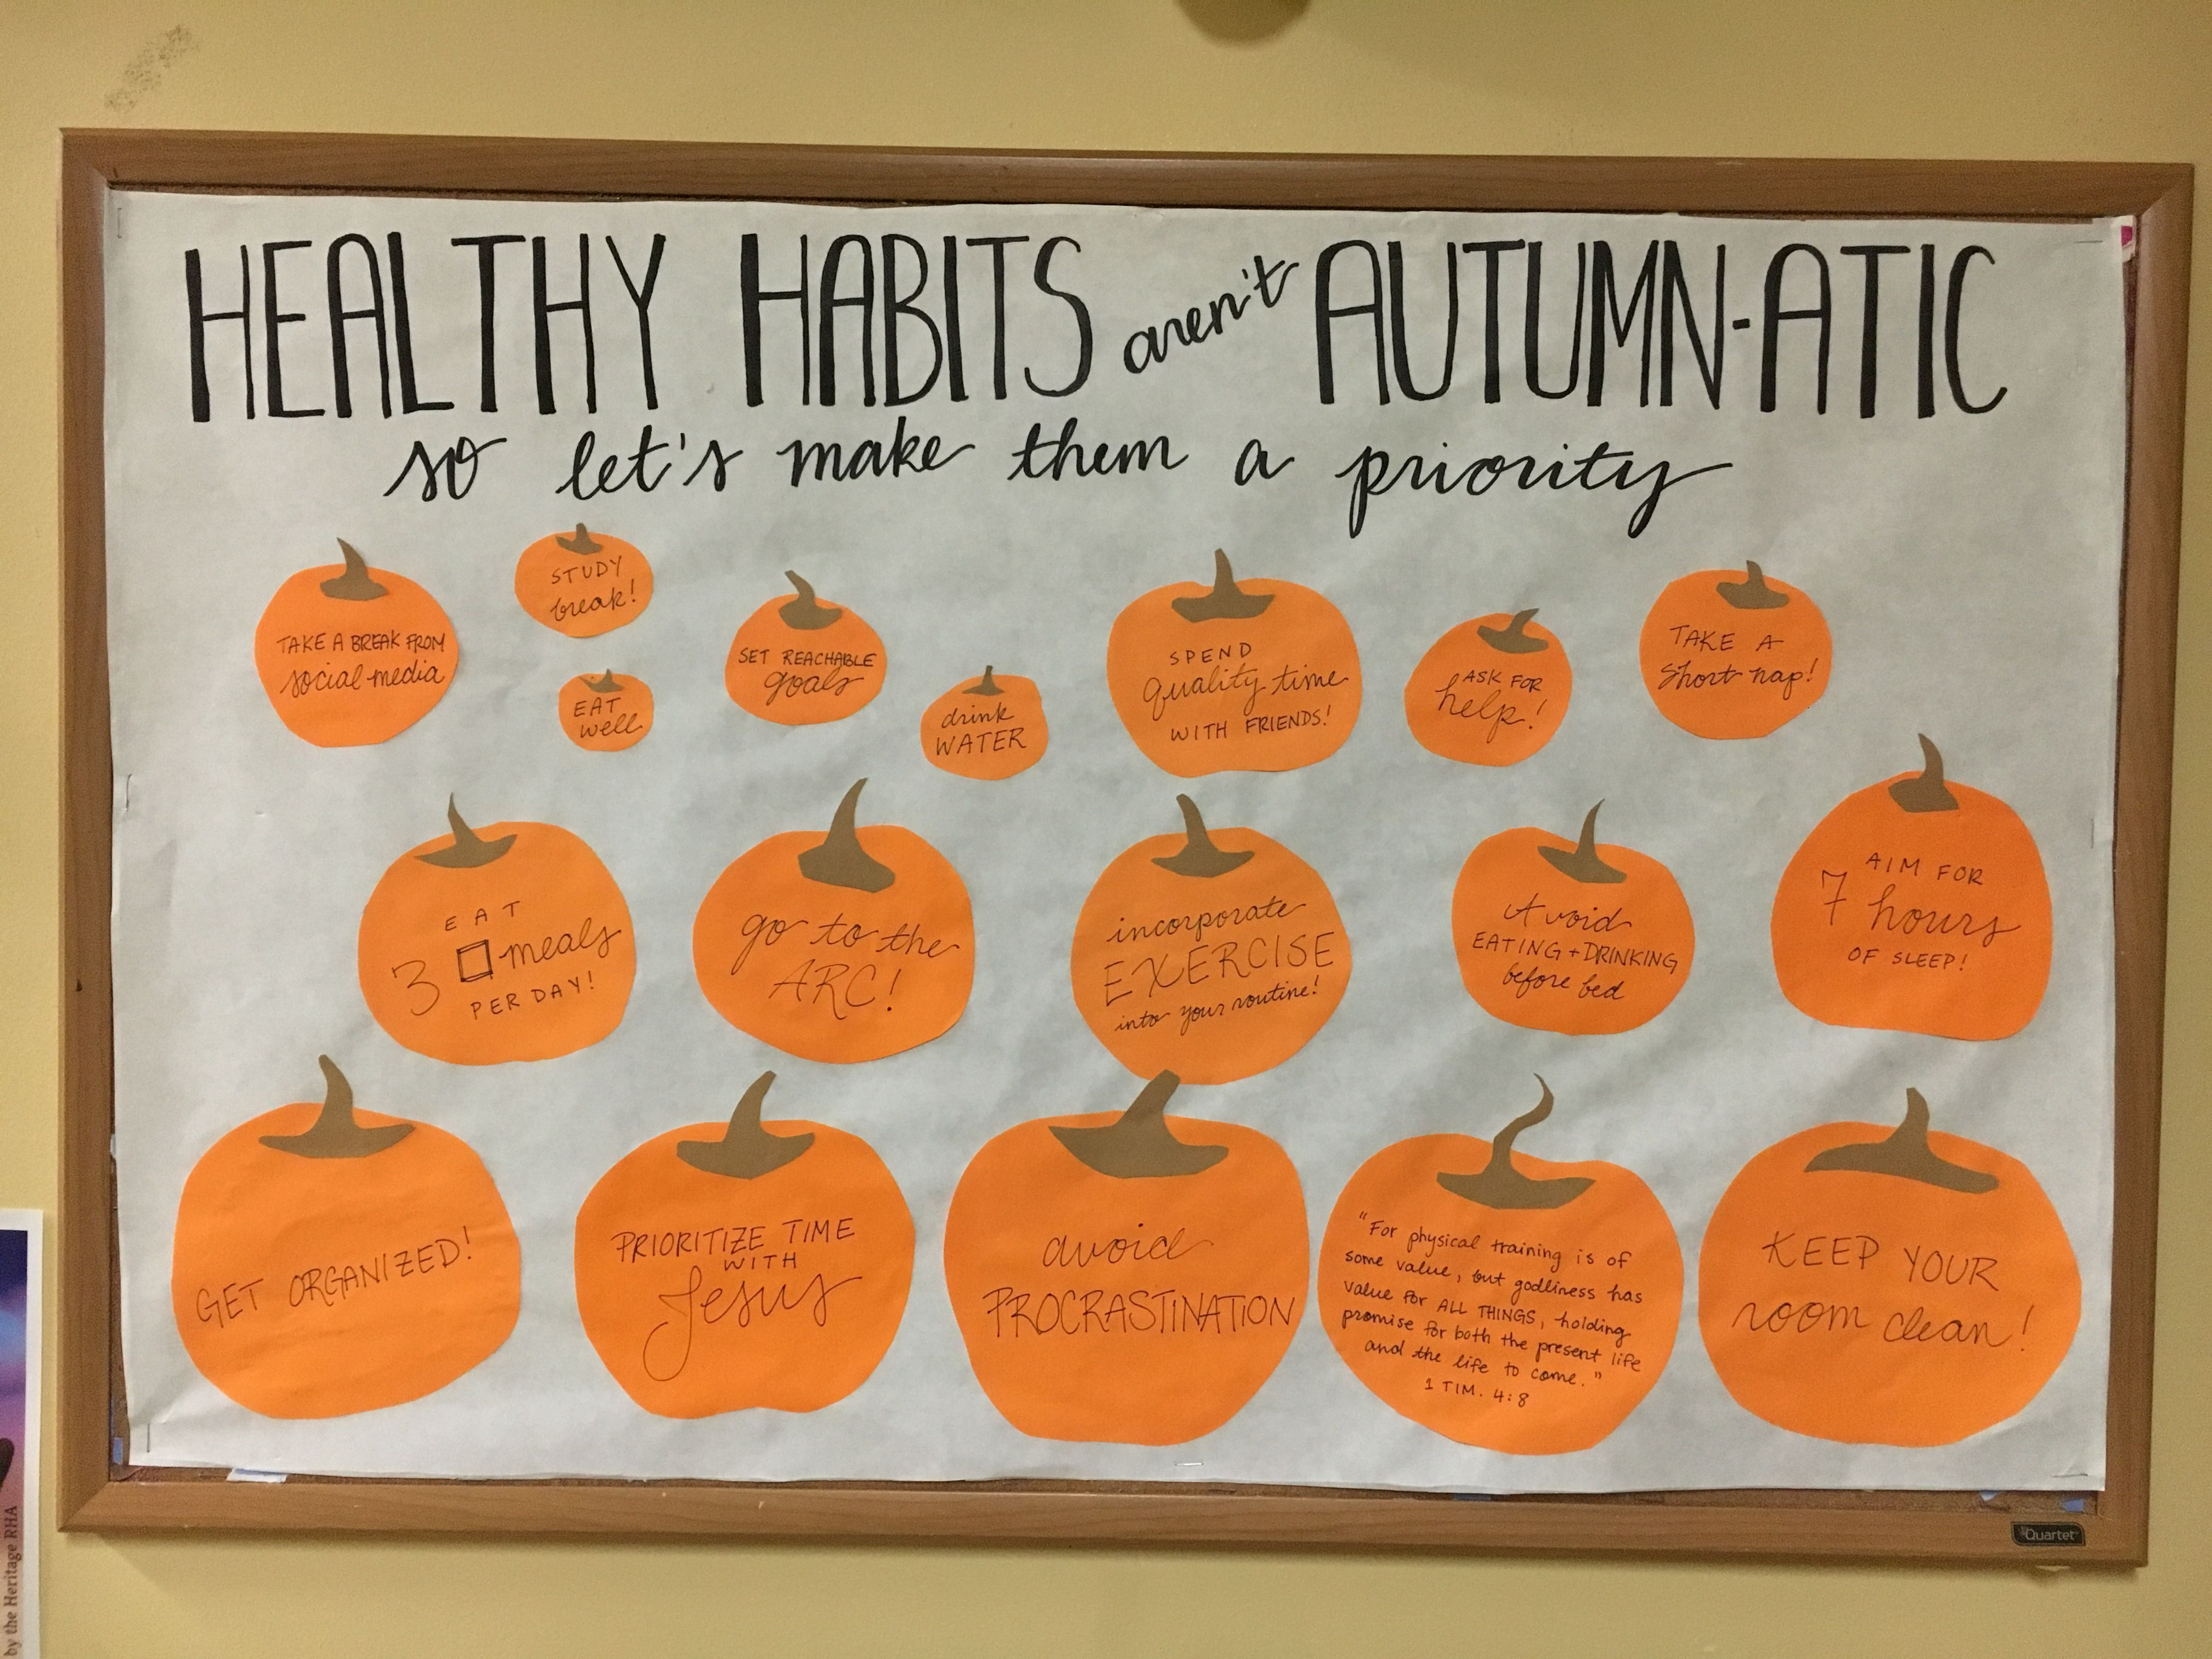 Fall or autumn bulletin board with pumpkins, healthy habits, health and wellness #rabulletinboards Fall or autumn bulletin board with pumpkins, healthy habits, health and wellness #rabulletinboards Fall or autumn bulletin board with pumpkins, healthy habits, health and wellness #rabulletinboards Fall or autumn bulletin board with pumpkins, healthy habits, health and wellness #novemberbulletinboards Fall or autumn bulletin board with pumpkins, healthy habits, health and wellness #rabulletinboards #novemberbulletinboards